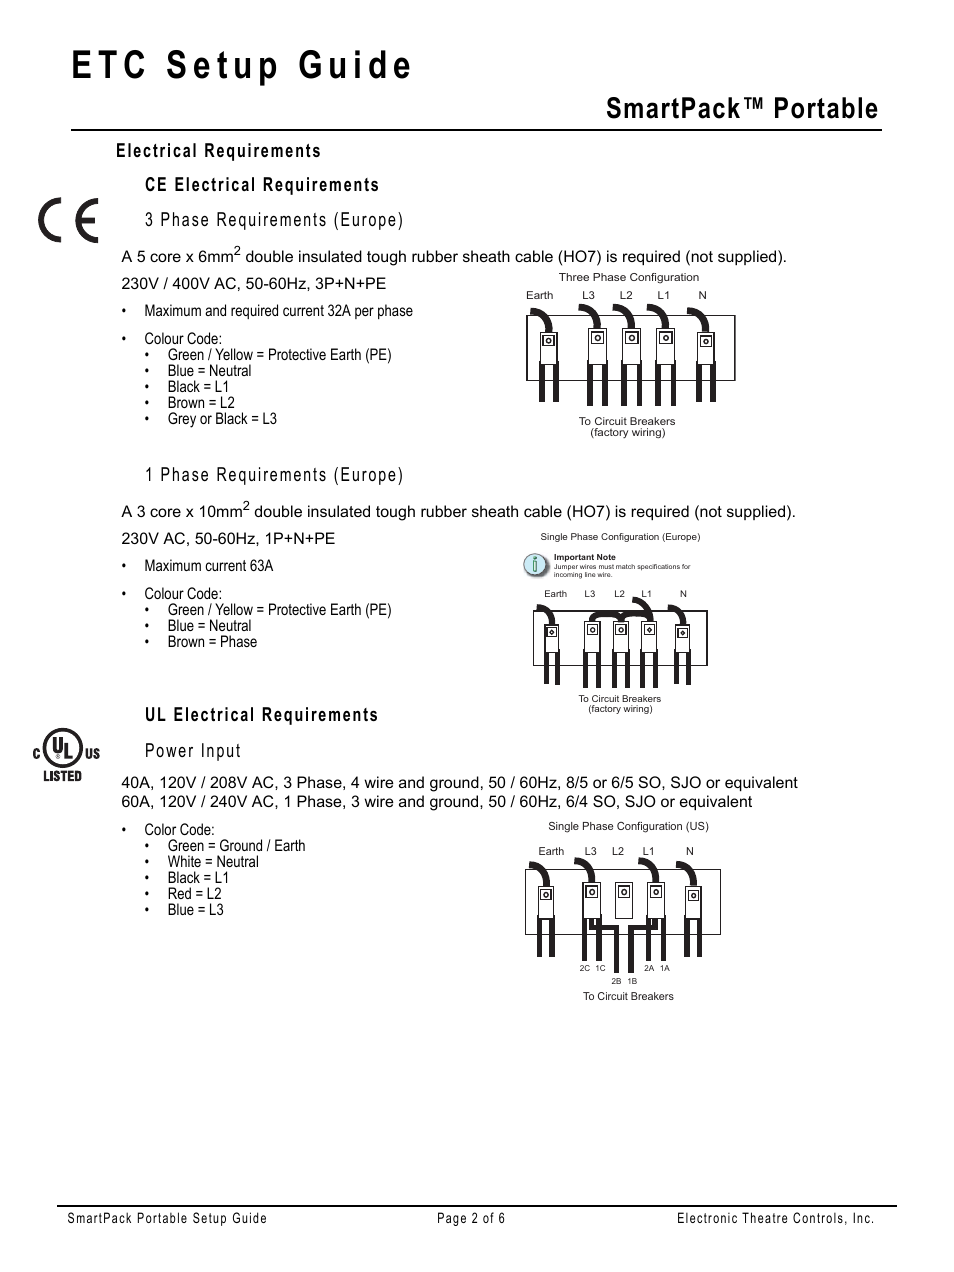 Electrical requirements, Ce electrical requirements, 3 phase